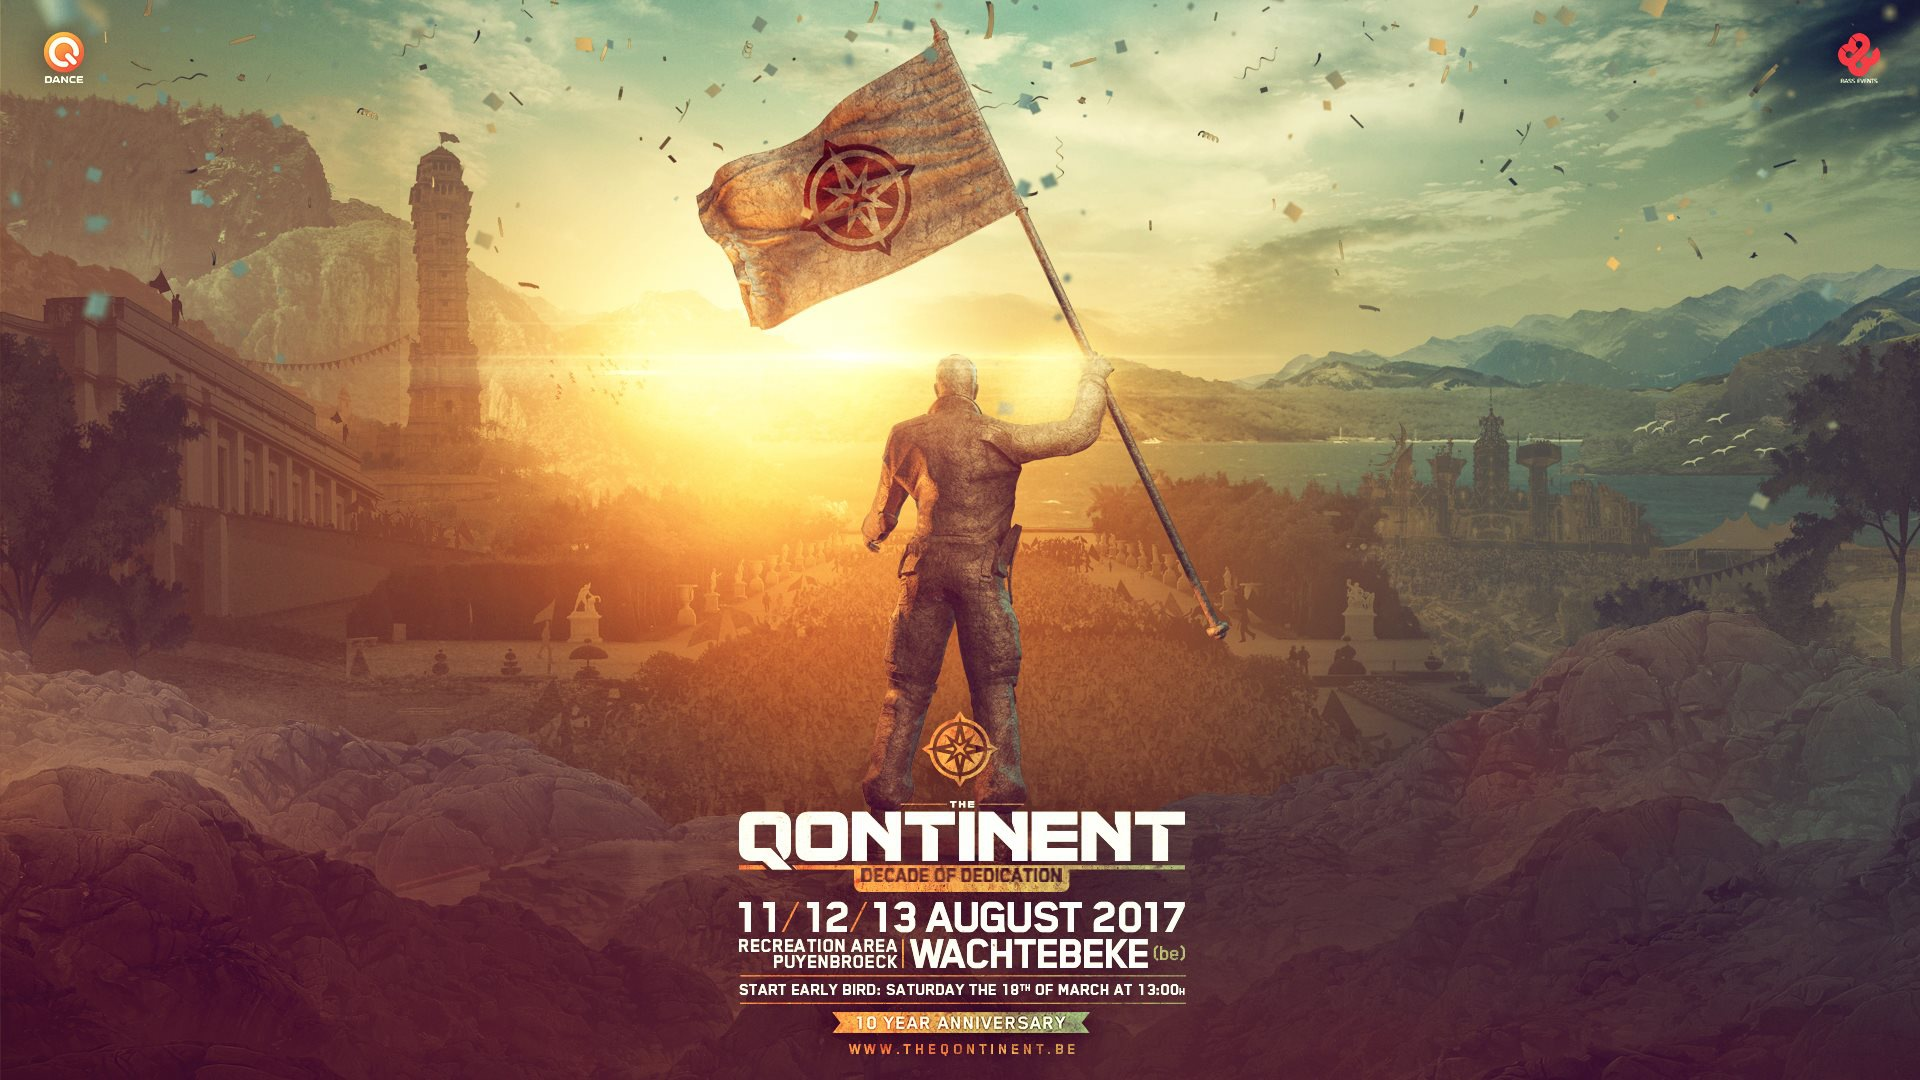 The Qontinent - Weekend 2017